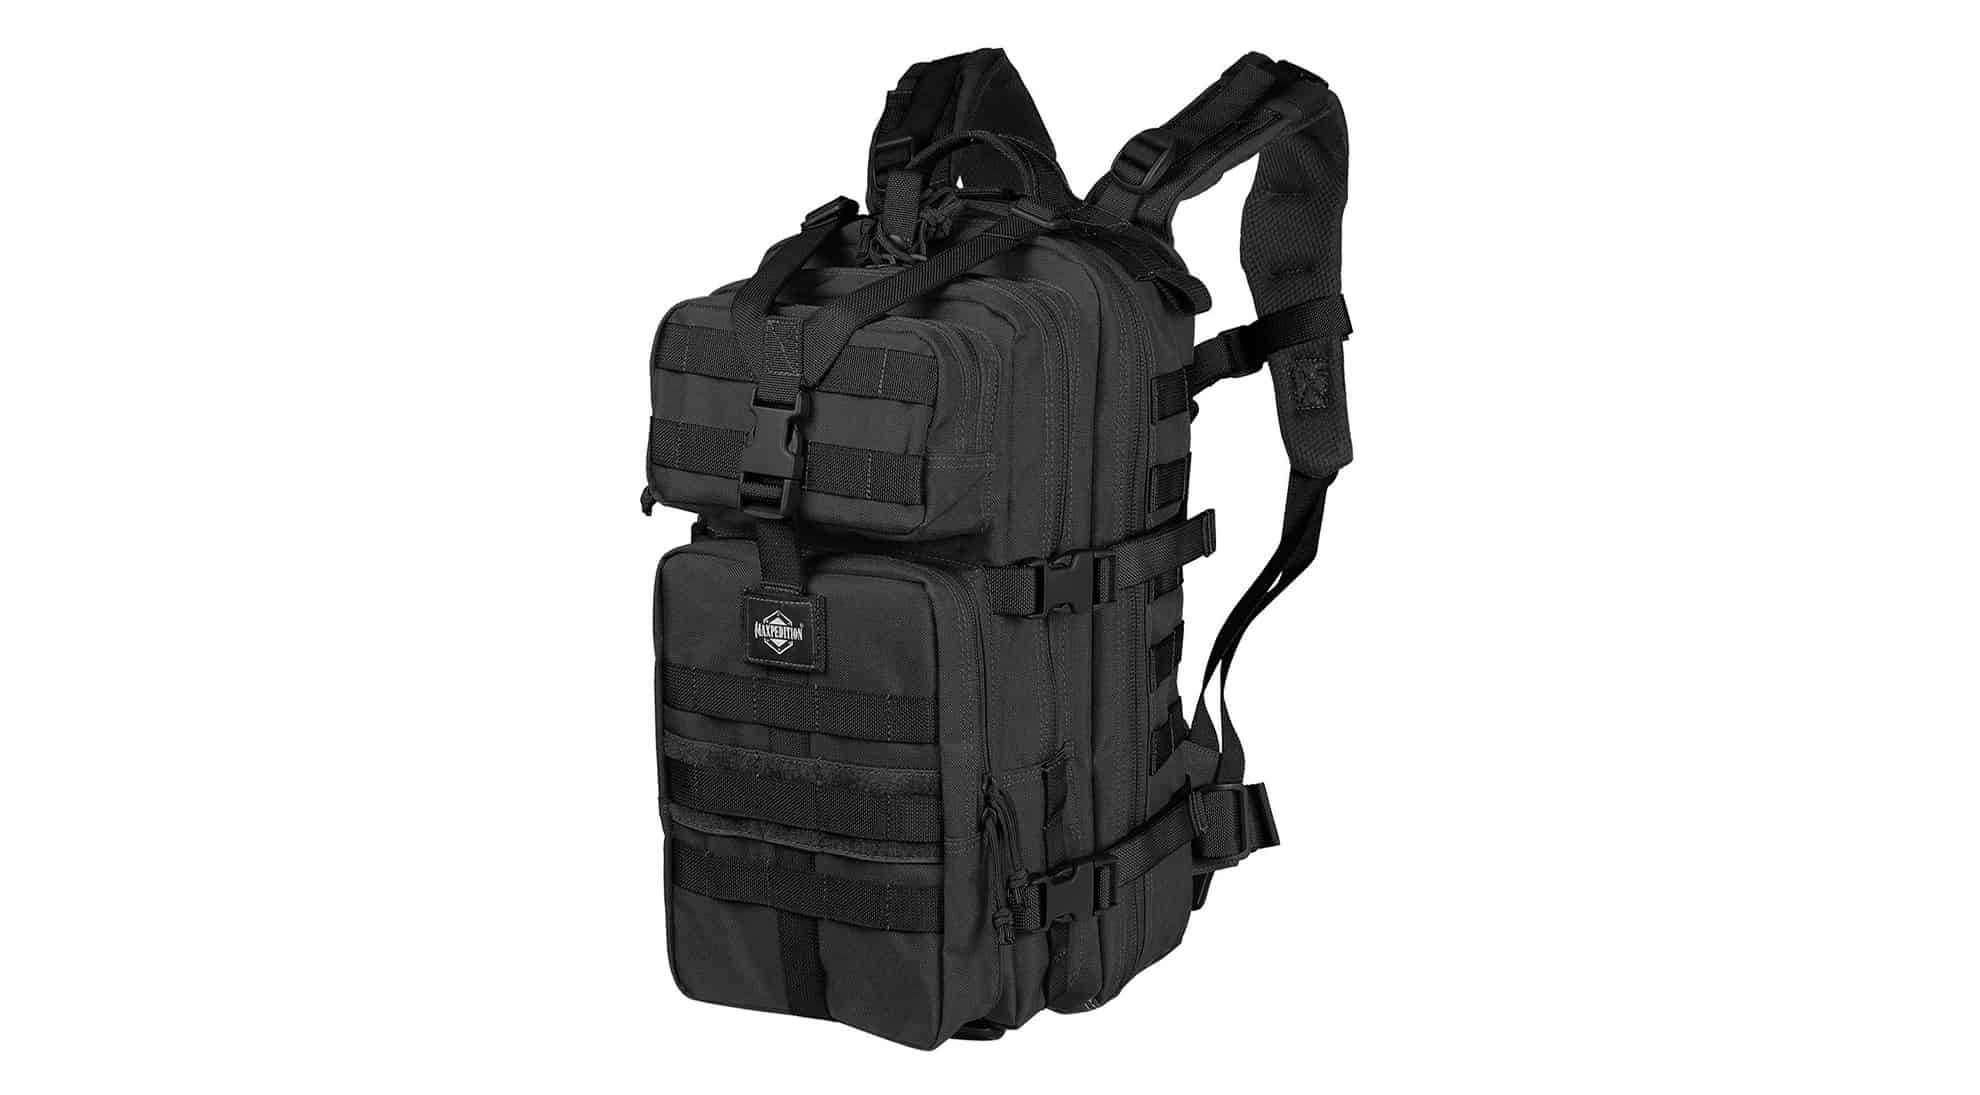 Maxpedition Falcon-II Tactical Backpack